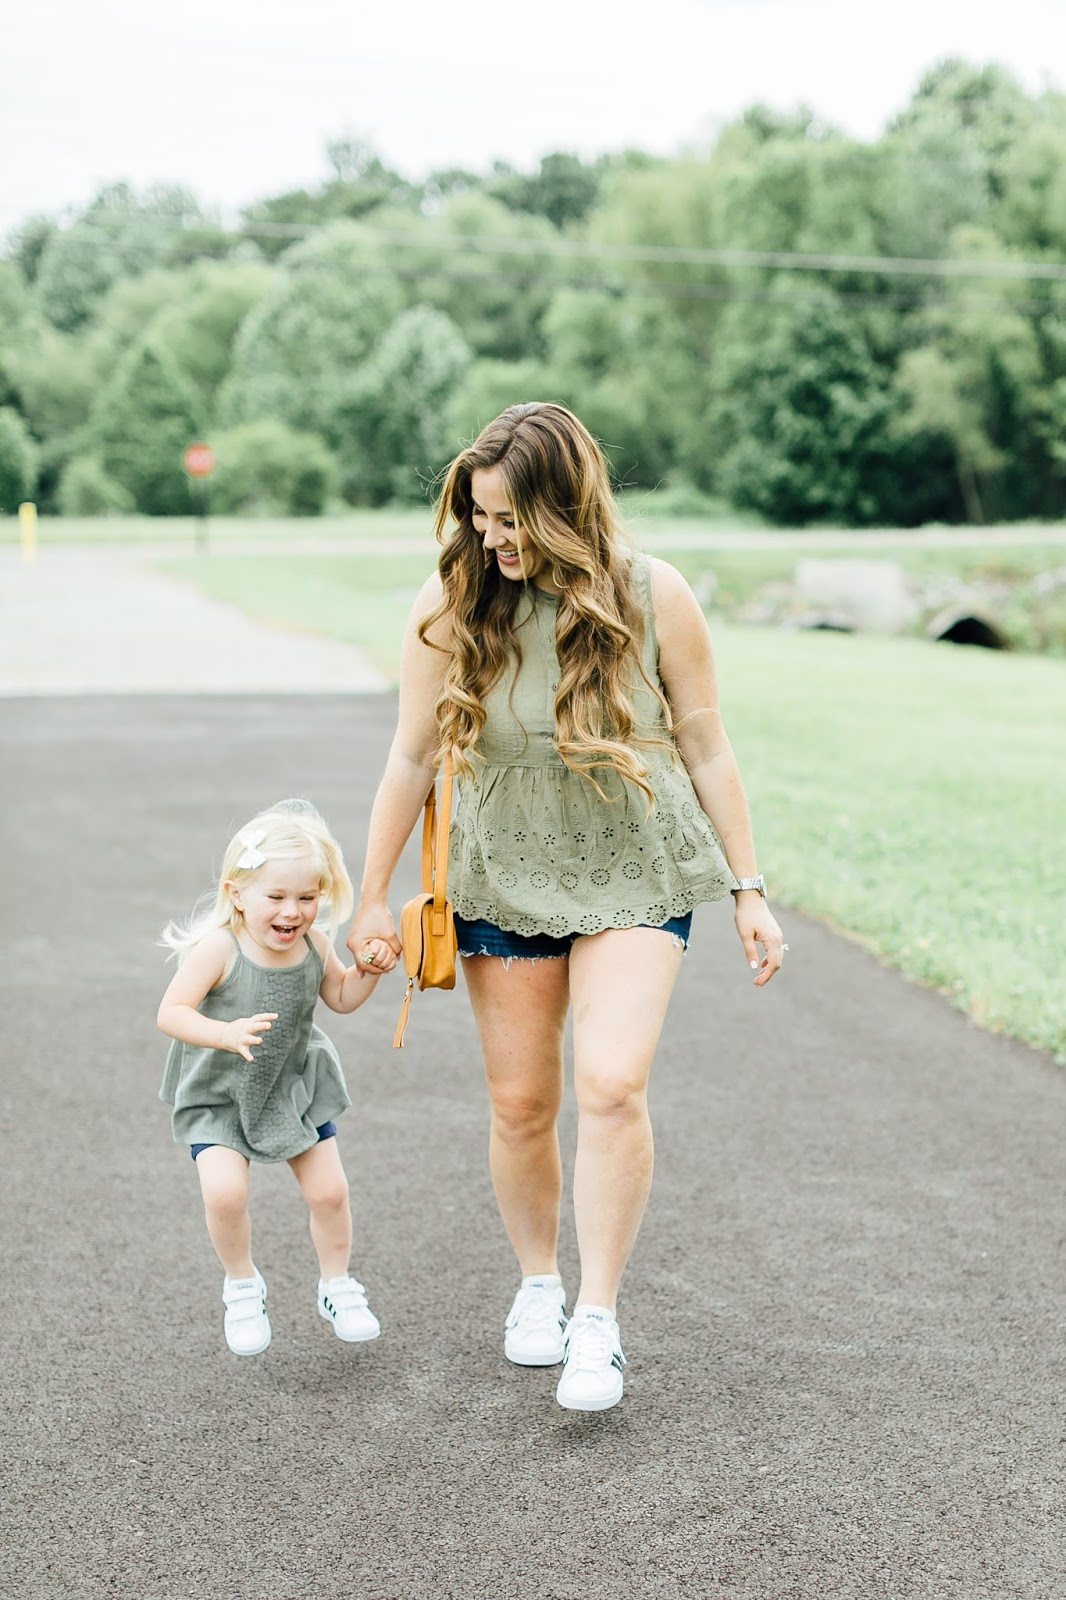 Where to Buy Affordable Casual Summer Clothing for Kids & Moms by fashion blogger Laura of Walking in Memphis in High Heels